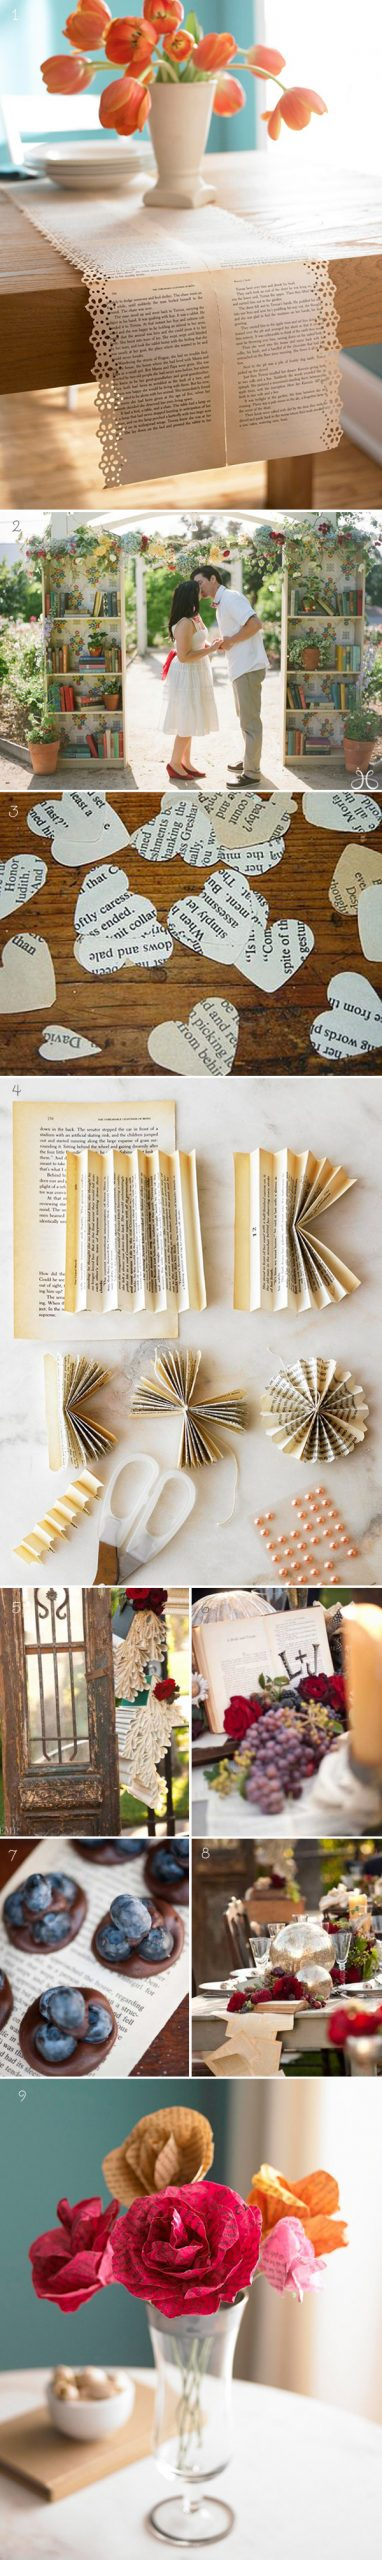 Minus the actual bookcases some cool ways to incorporate recycled book pages sin…